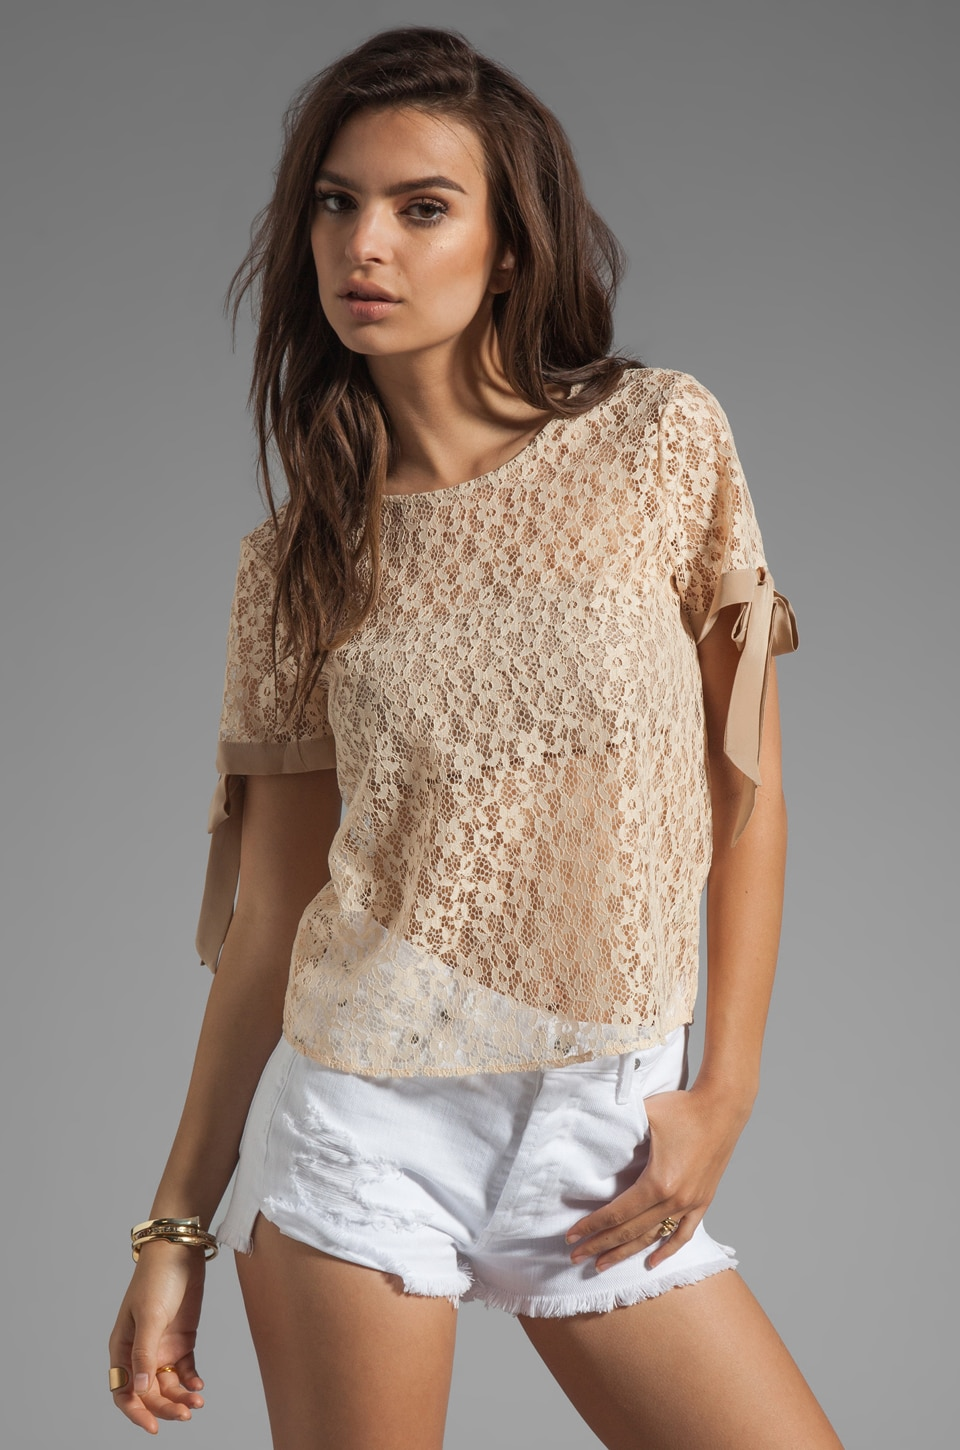 Paper Crown by Lauren Conrad Jamestown Lace Top in Peach